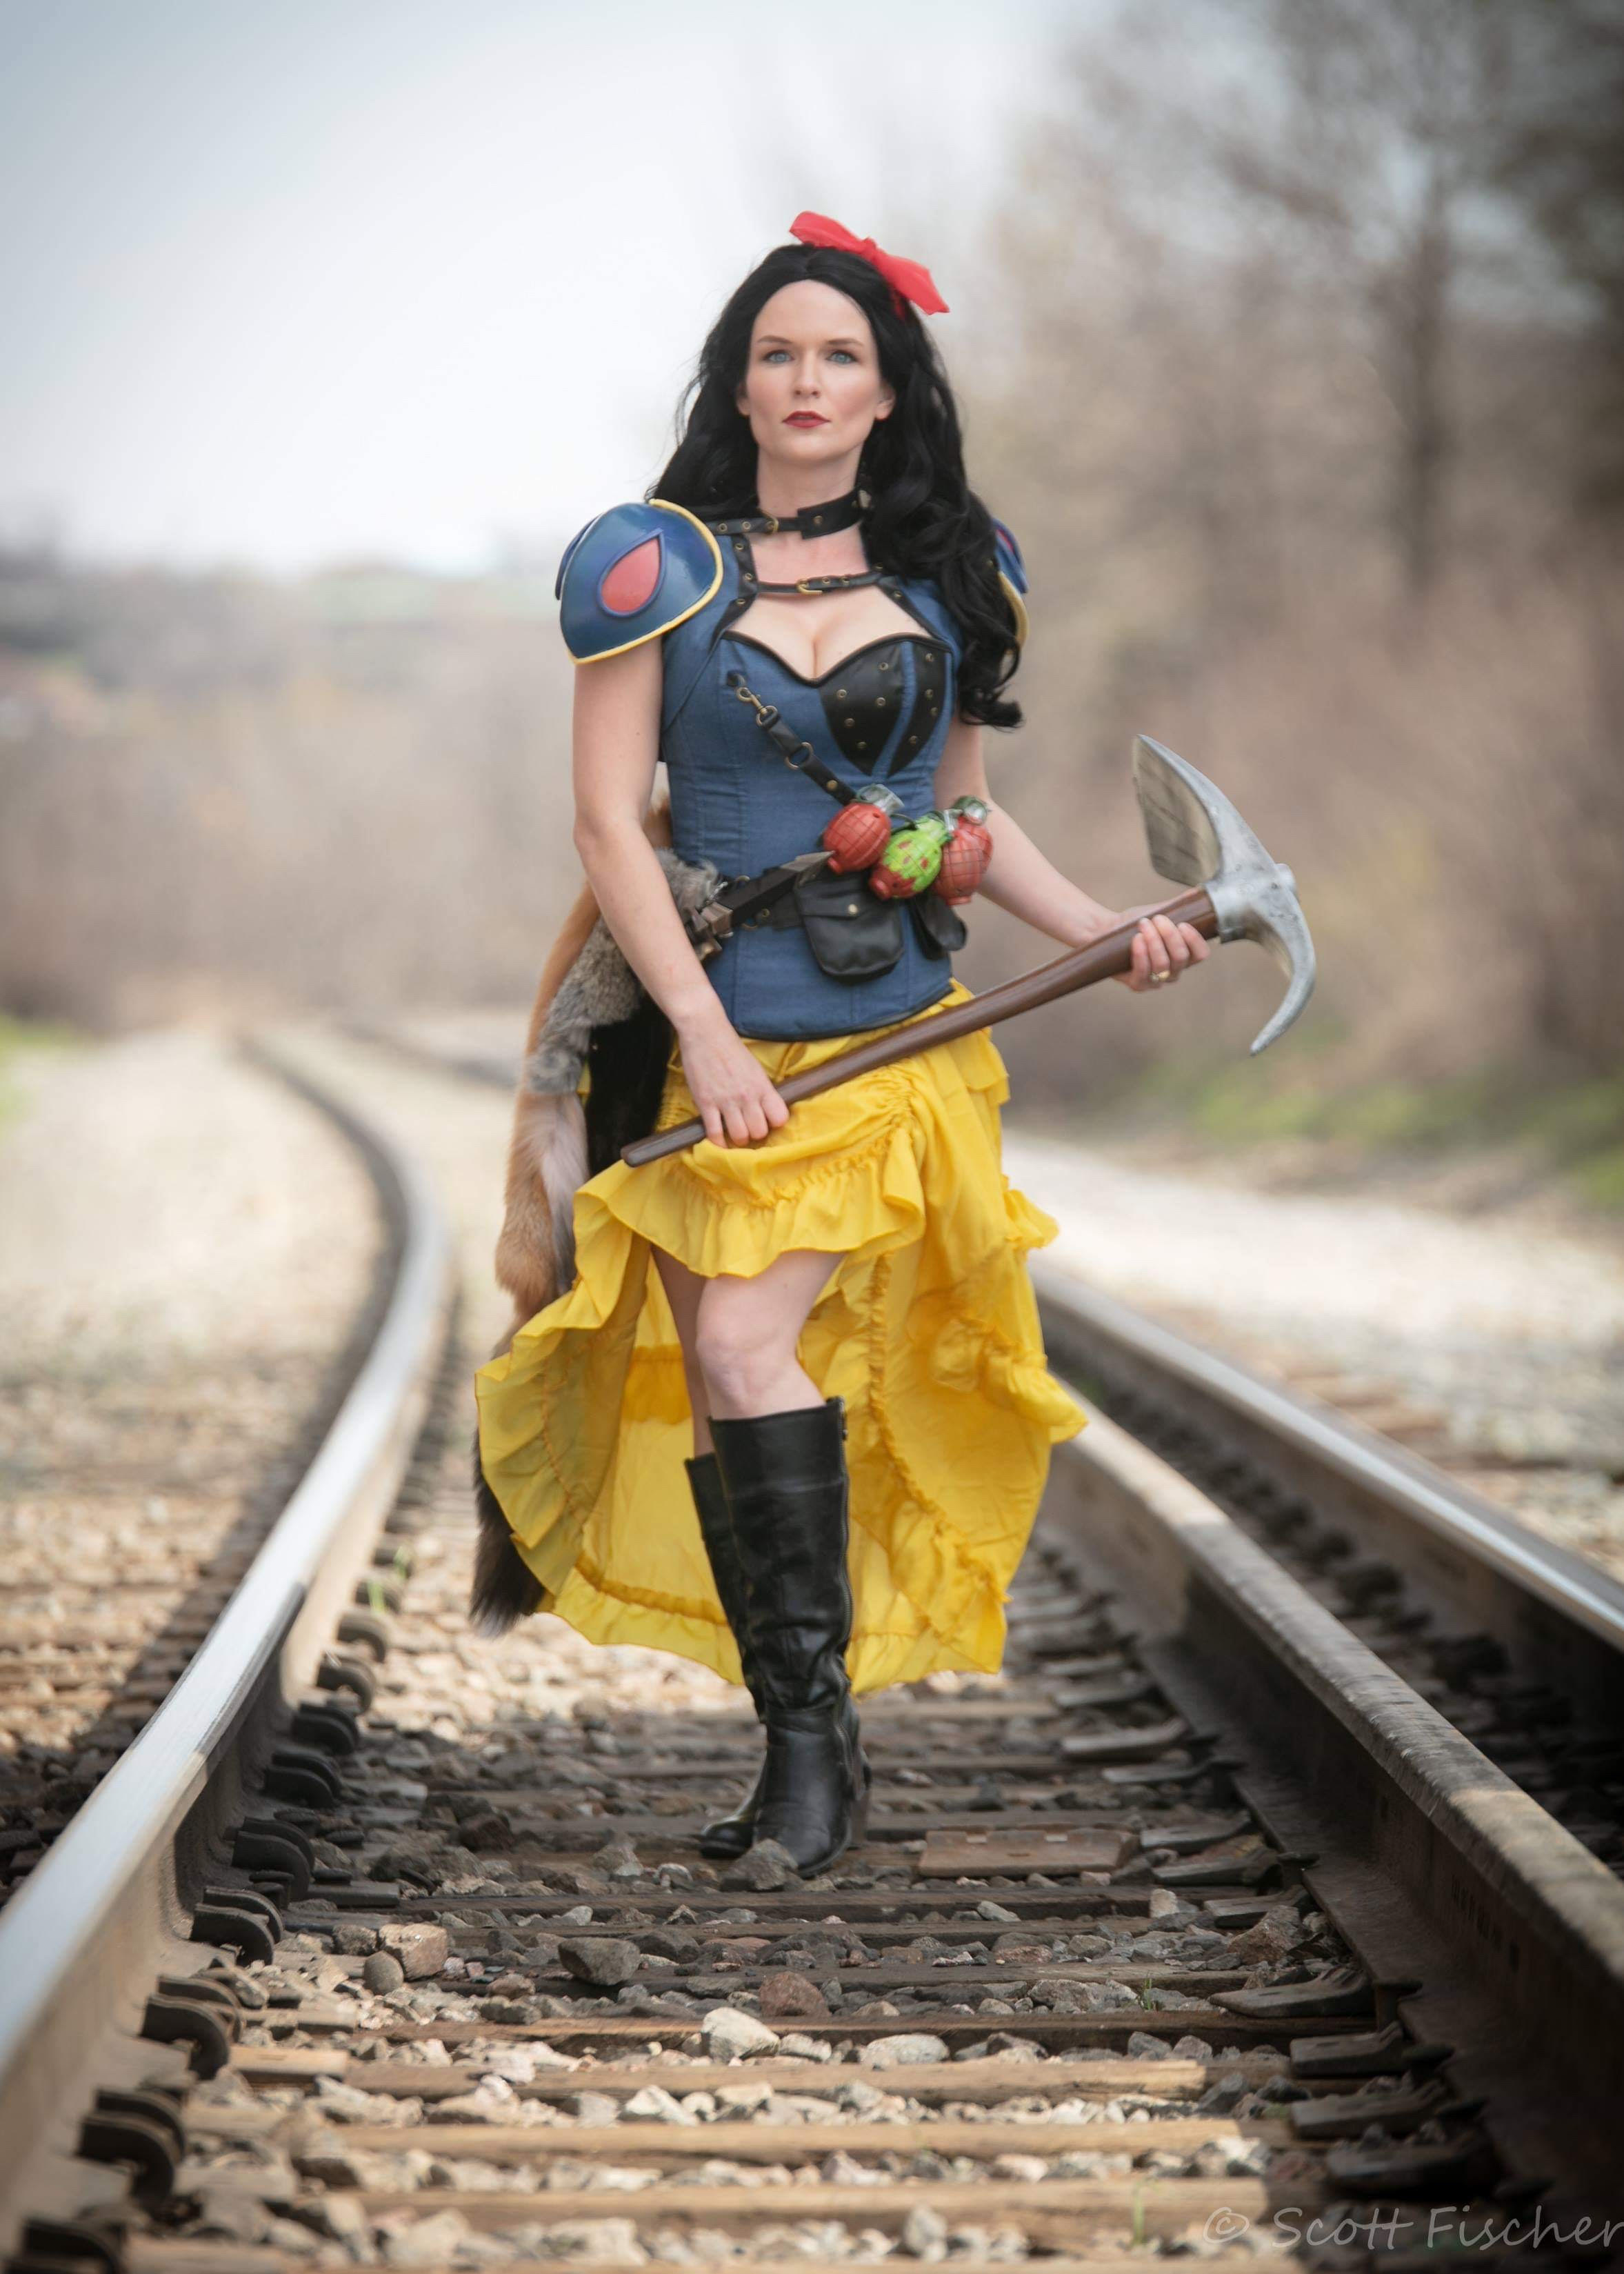 Fierce Post Apocalyptic Snow White Cosplay | Project-Nerd